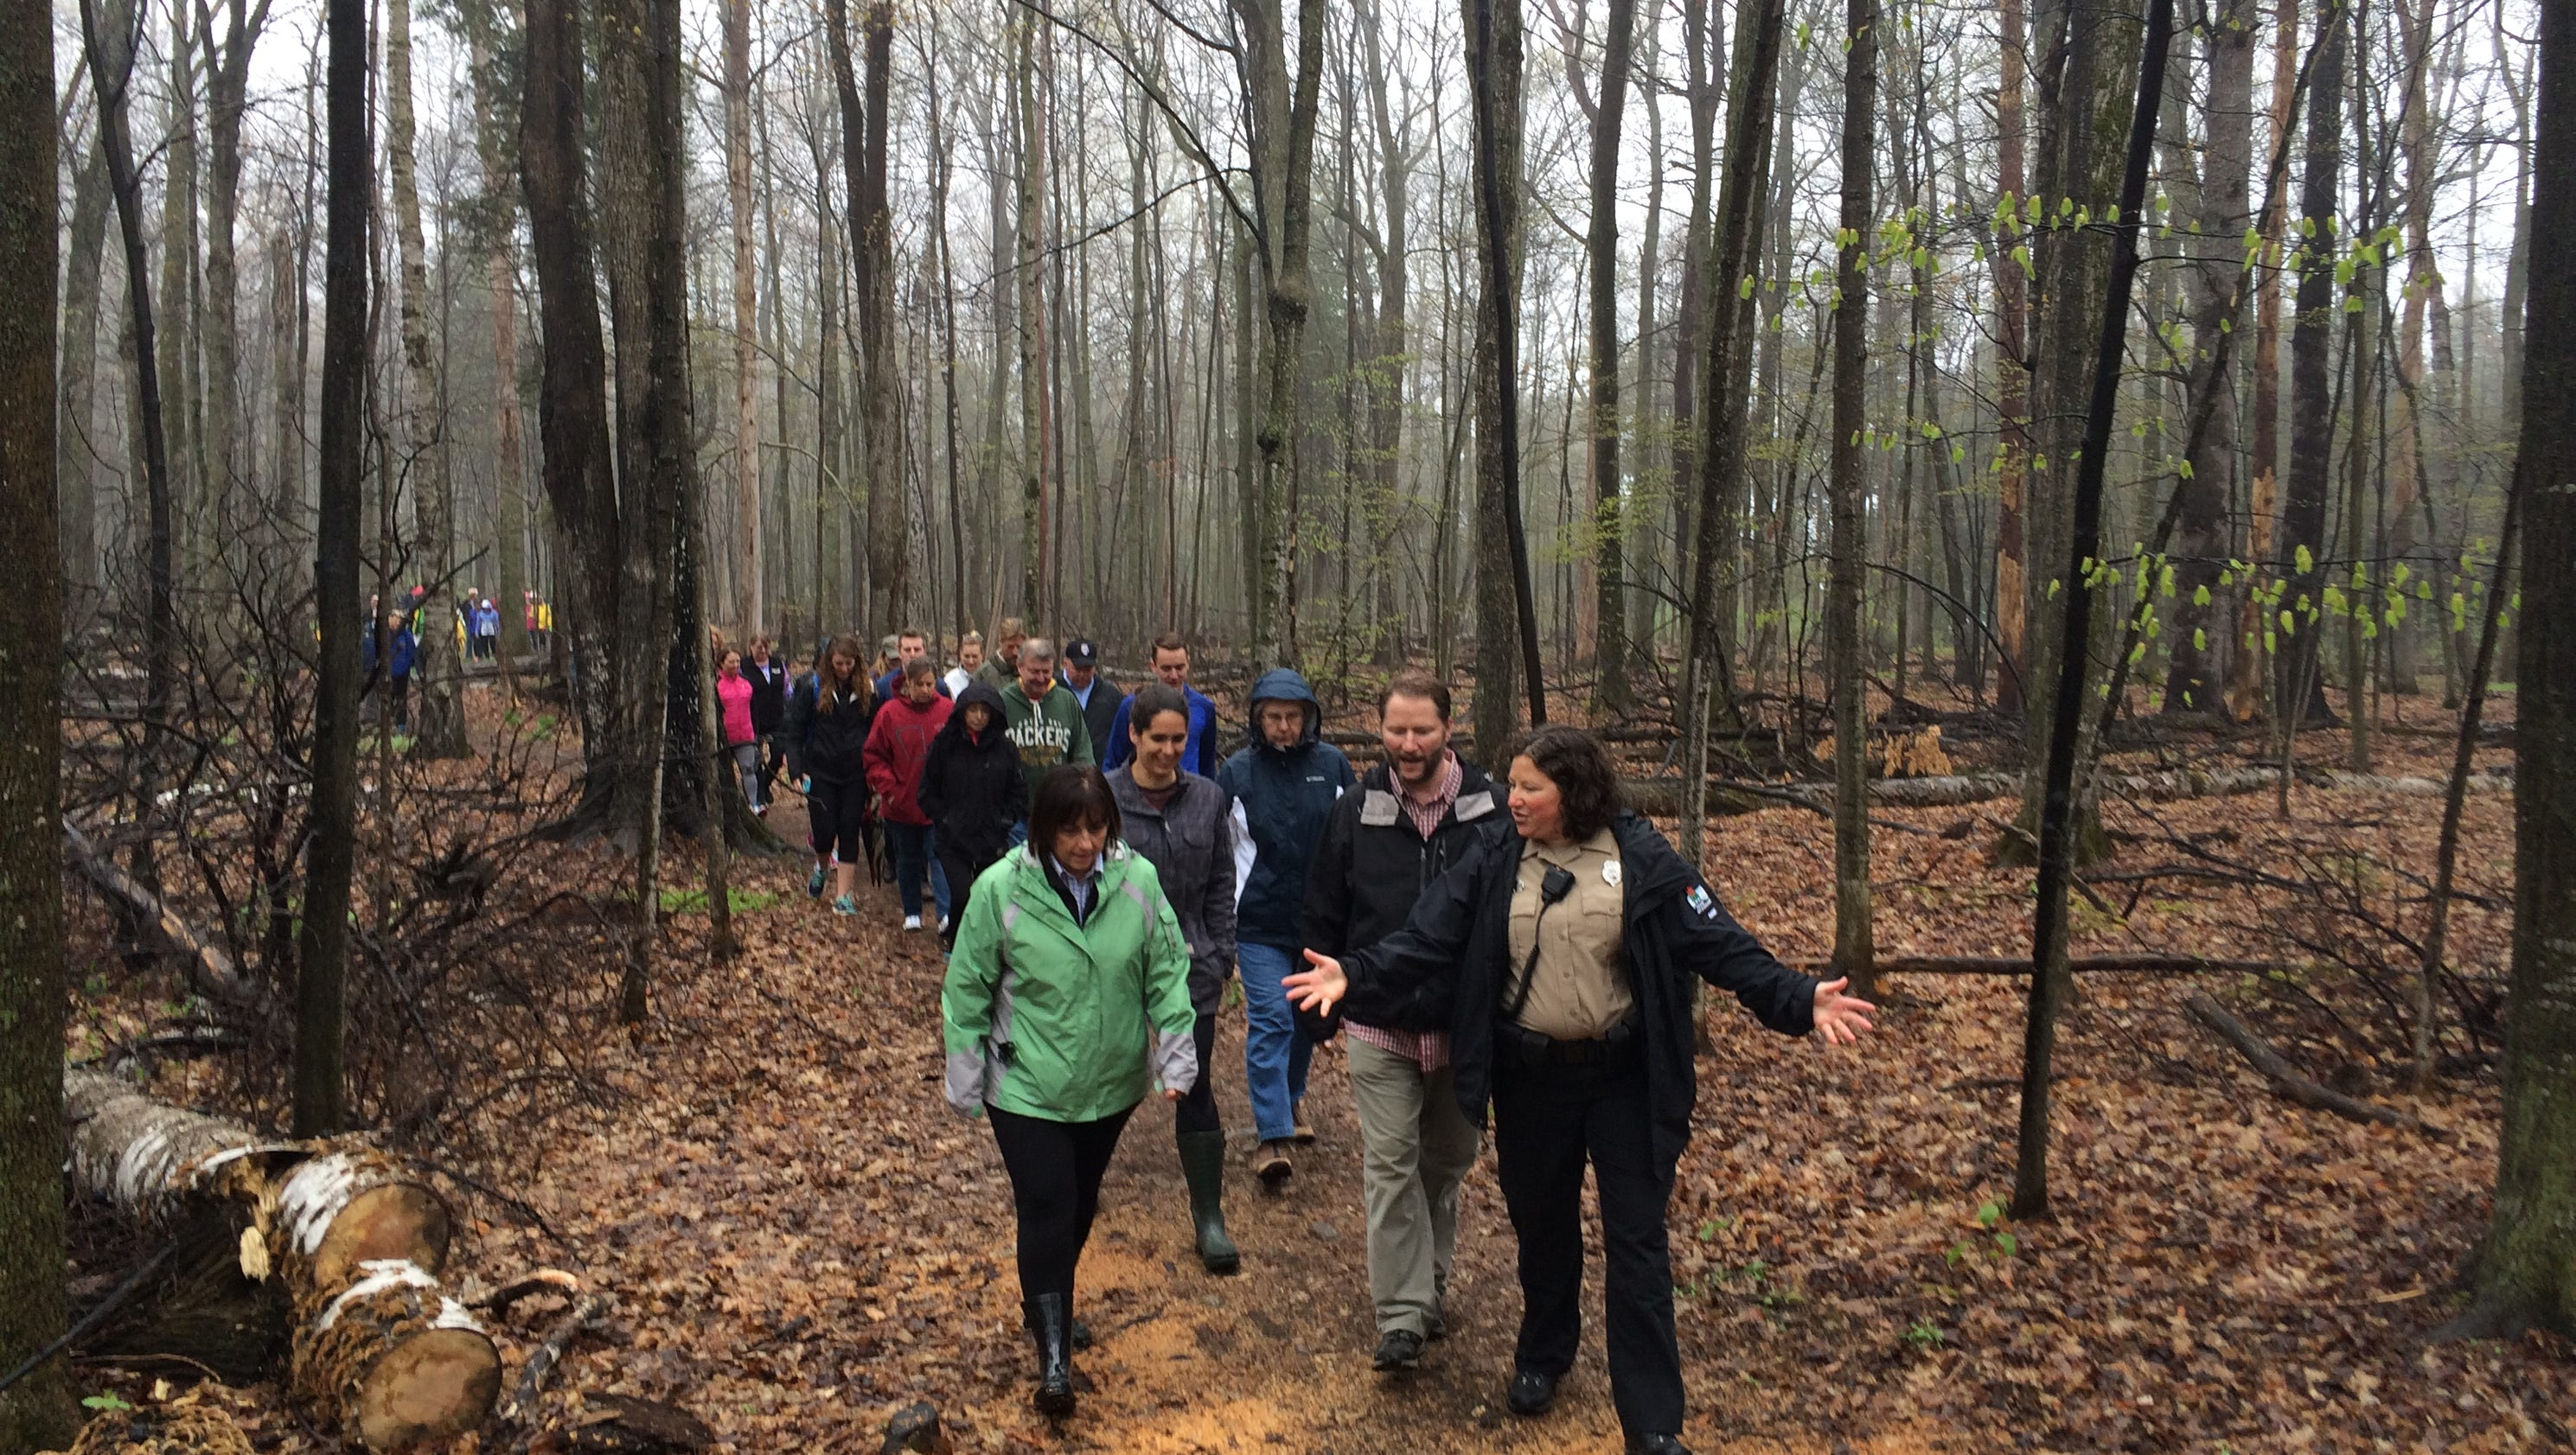 First Lady Takes 50th Walk In Door County